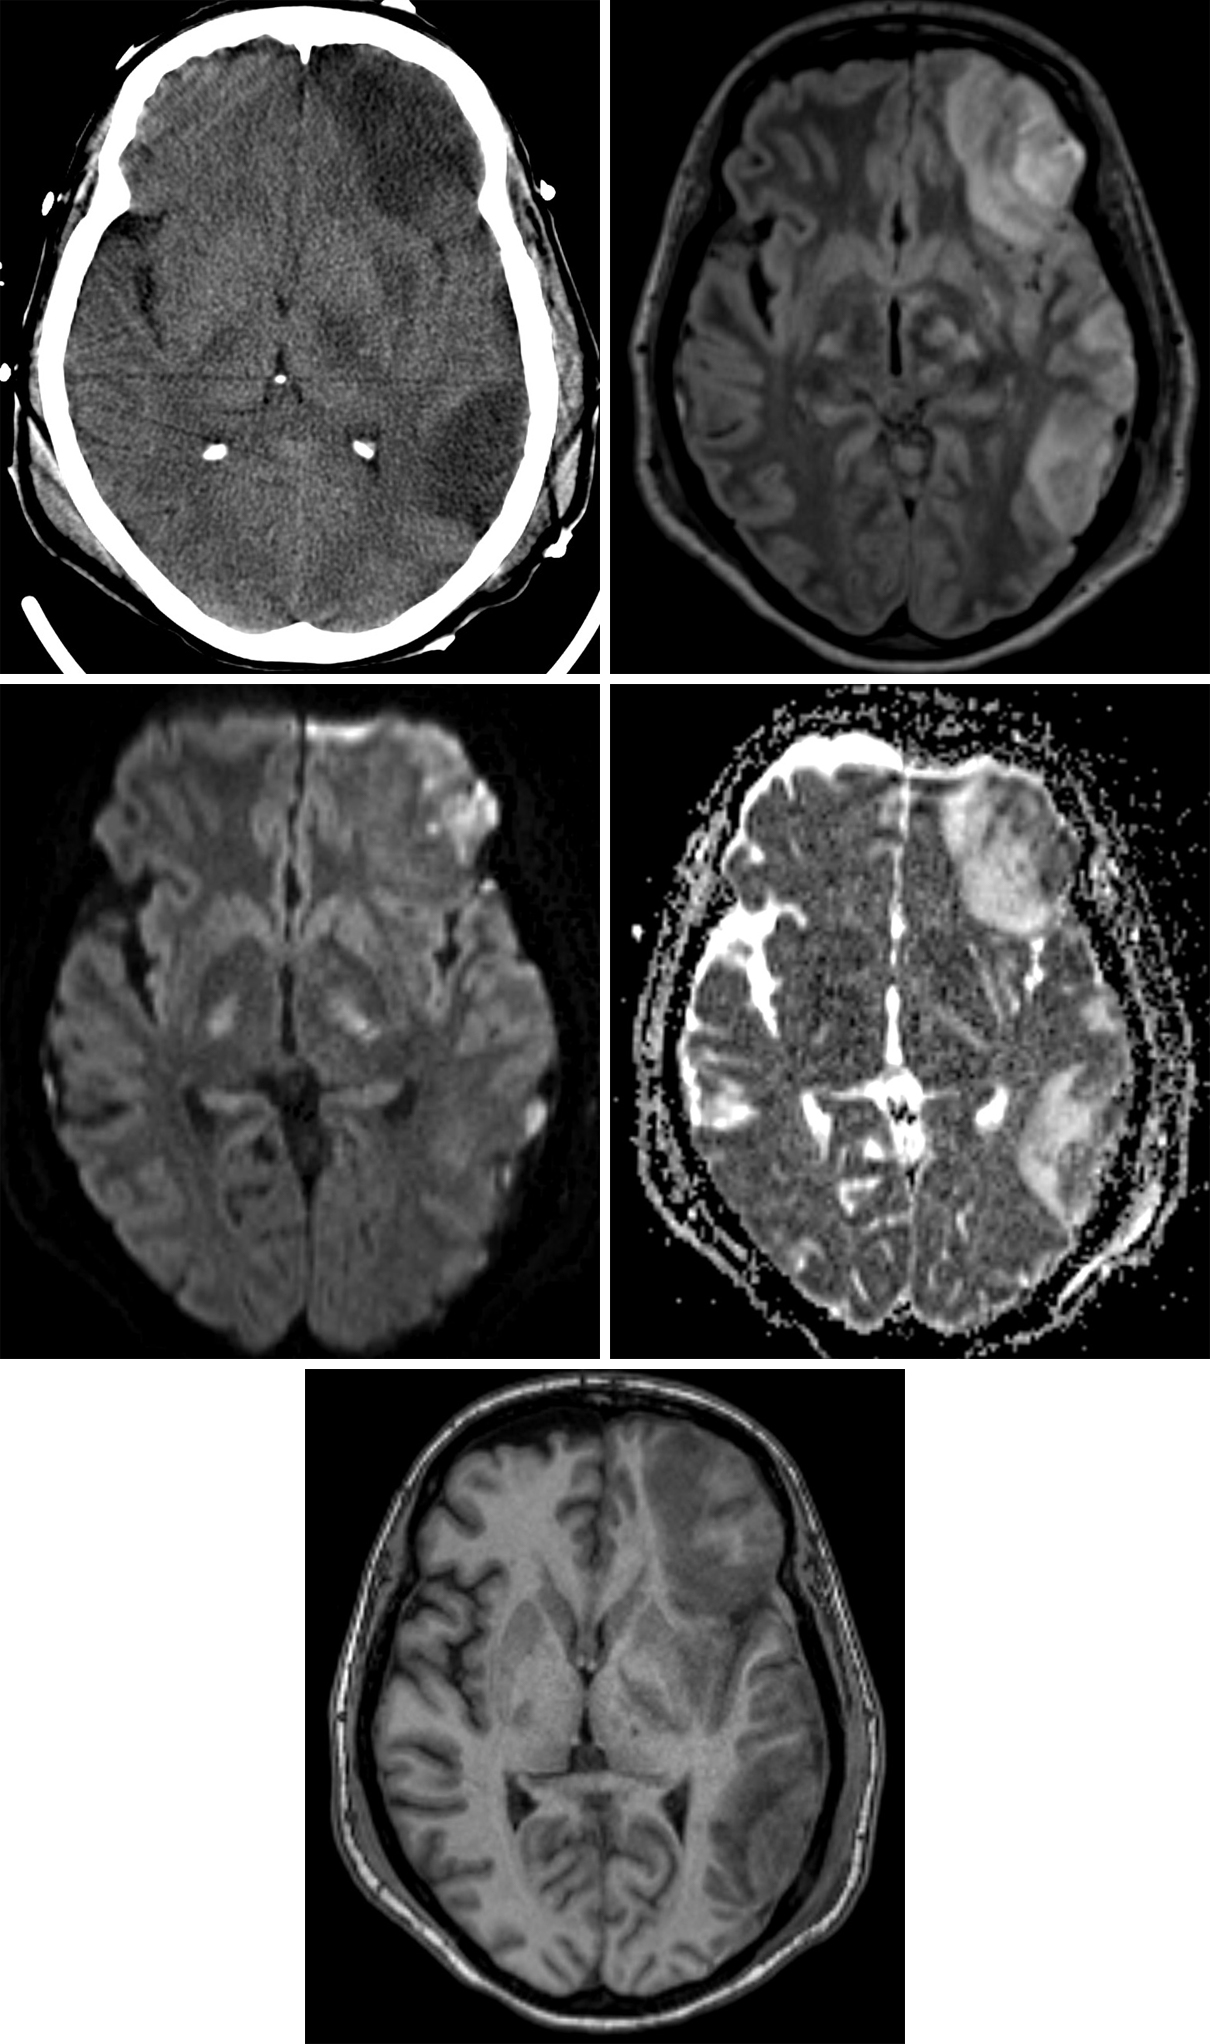 Figure 1: Lateral left frontal and temporal contusional edema is of low density on this CT image (top row left). FLAIR image (top row right) demonstrates the hyperintense edema in the lateral left frontal lobe and lateral left temporal lobe. The involvement of the cortex implies a component of cytotoxic edema, while white matter involvement may be either cytotoxic or vasogenic in etiology. Diffusion-weighted imaging (middle row left) demonstrates hyperintensity in a smaller region of the lateral left frontal lobe and lateral left temporal lobe. The ADC (Apparent diffusion coefficient) image (middle row right) shows a sizeable component of hyperintense vasogenic edema with a smaller component of low signal-intensity cytotoxic edema in the more superficial contusion of the lateral left frontal and temporal lobes. The edema is predominantly hypointense on this T1-weighted image (bottom row), but the areas of more superficial hyperintensity imply a small hemorrhagic component to these contusions.